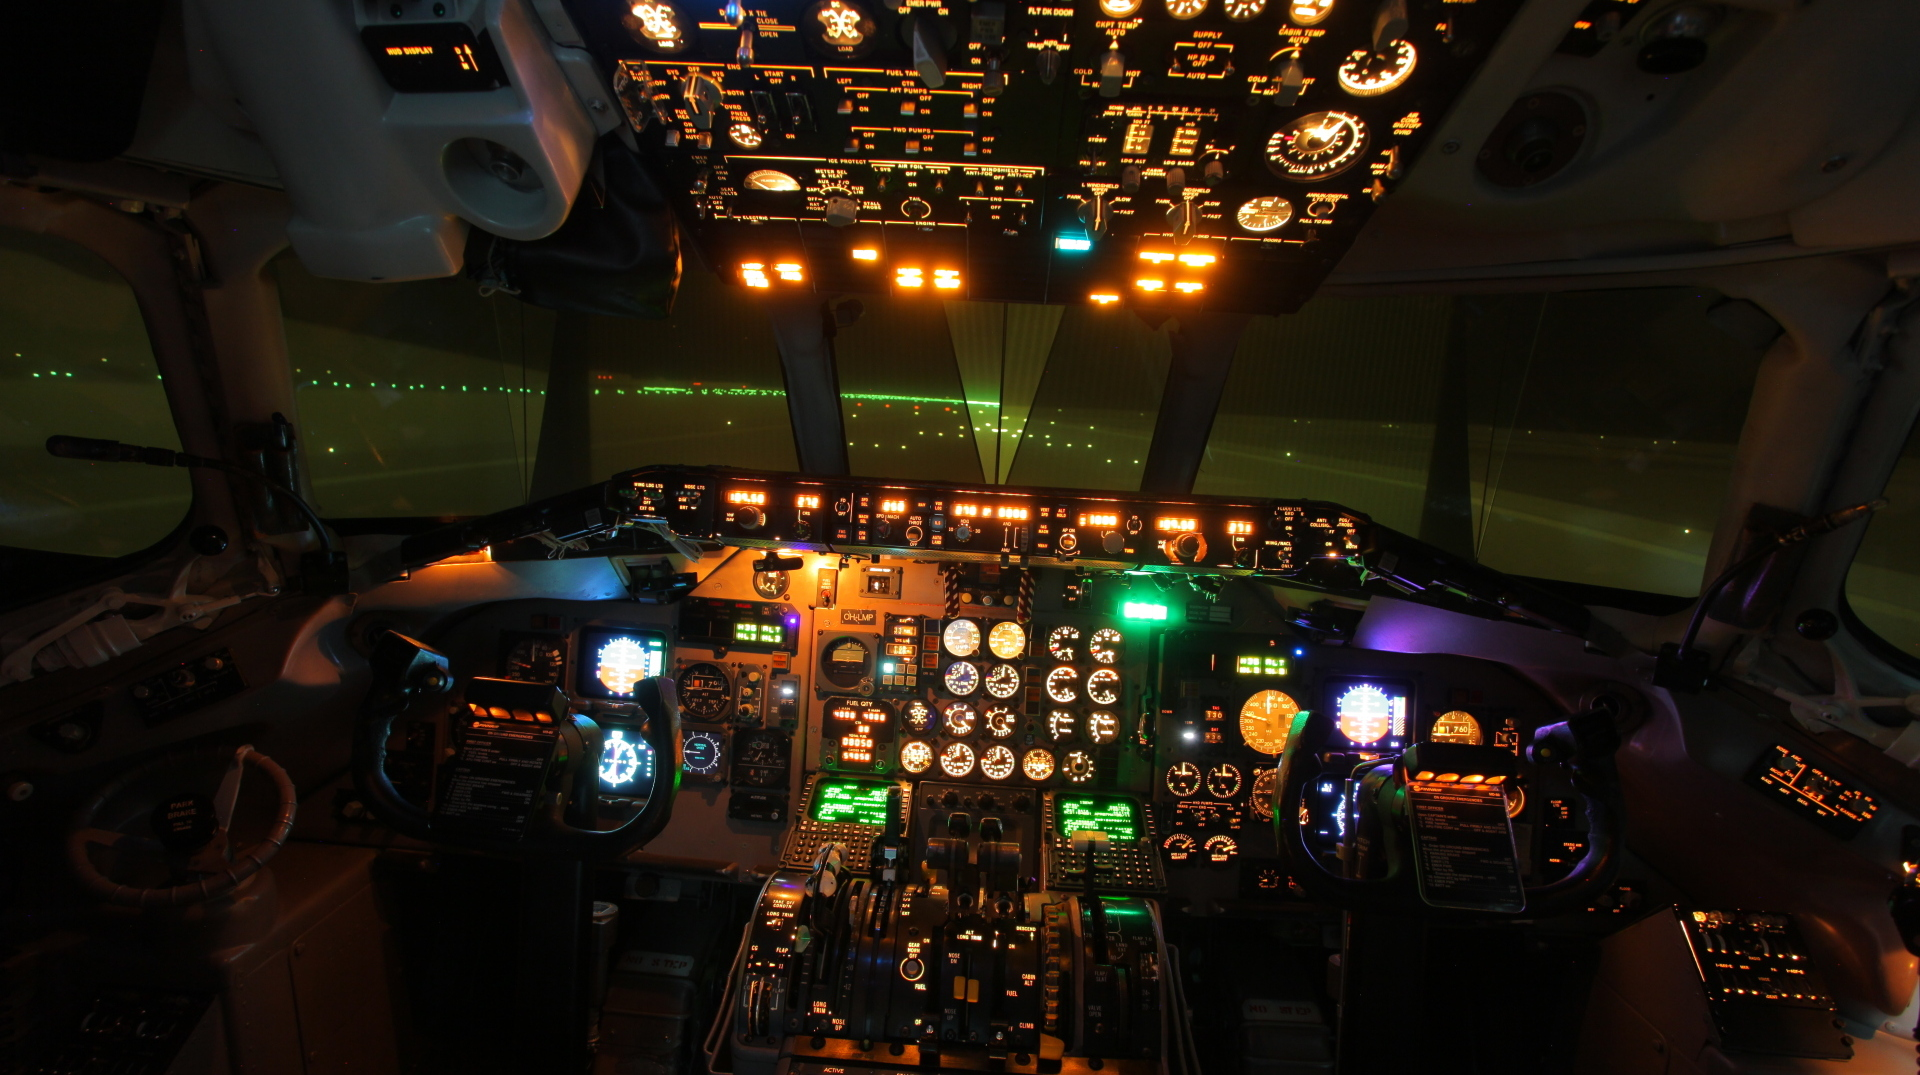 MD80 Full Flight Simulator